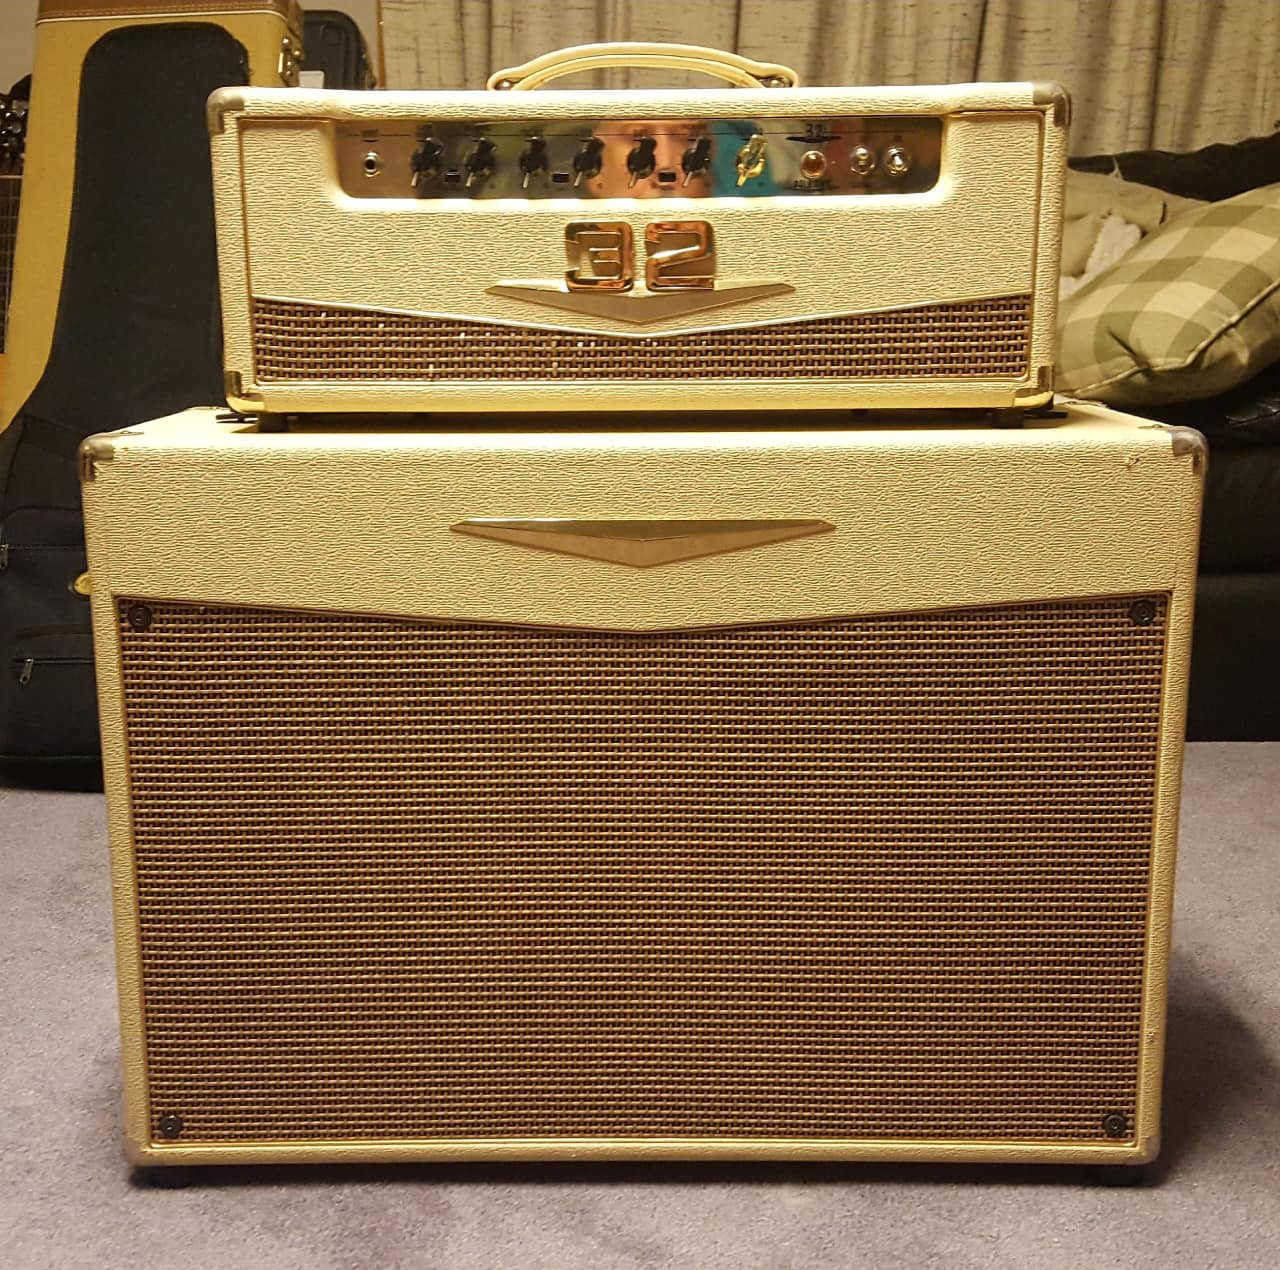 Crate Palomino V32 Head Amp 2x12 Half Stack Cabinet Reverb